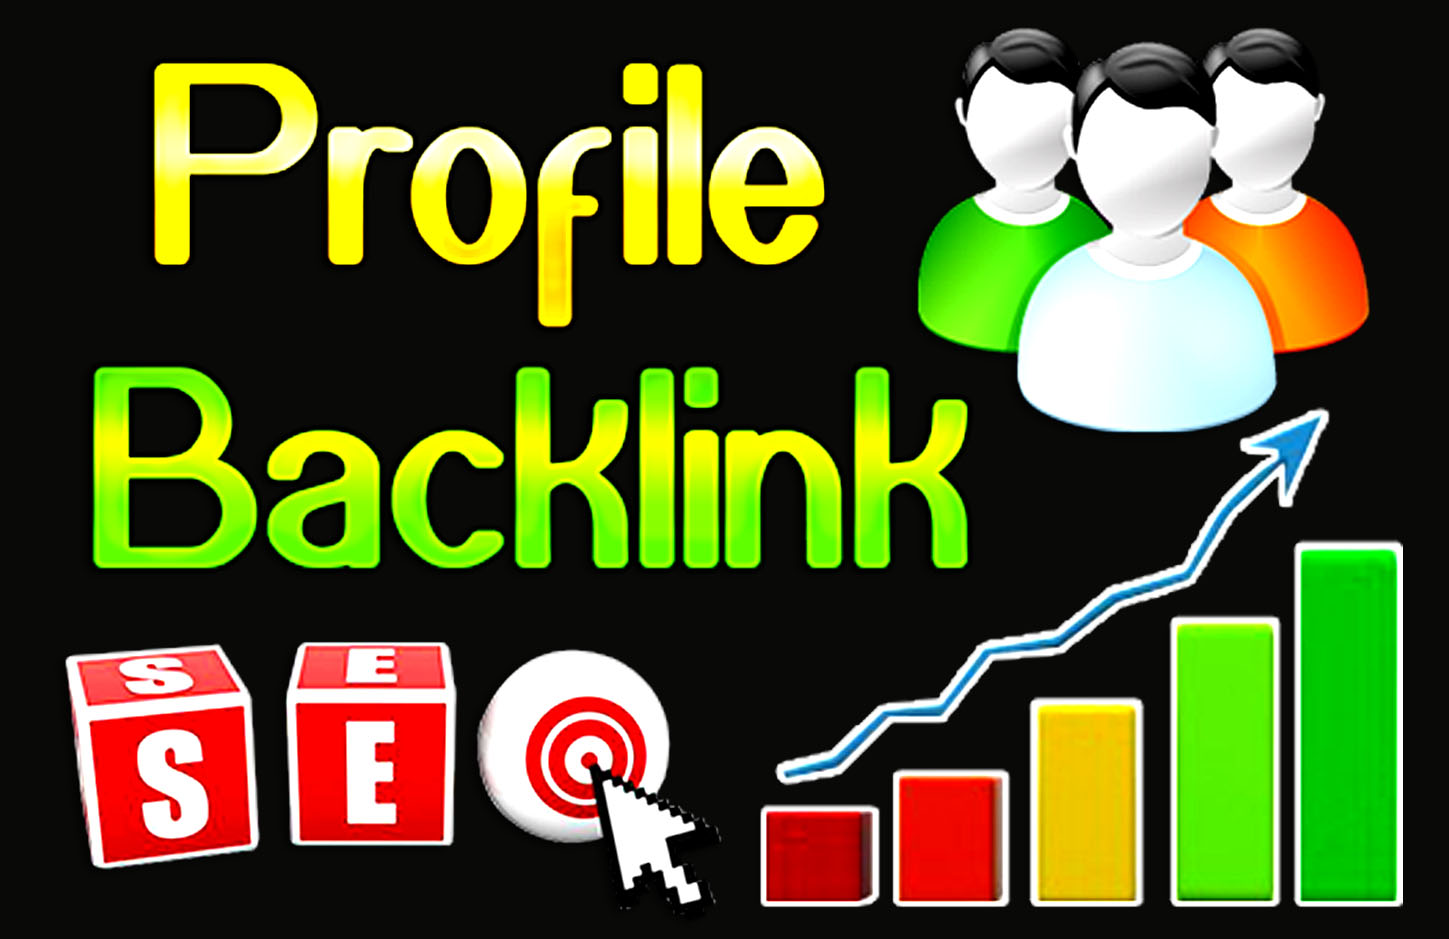 I will create 100 profile backlink manually for your website